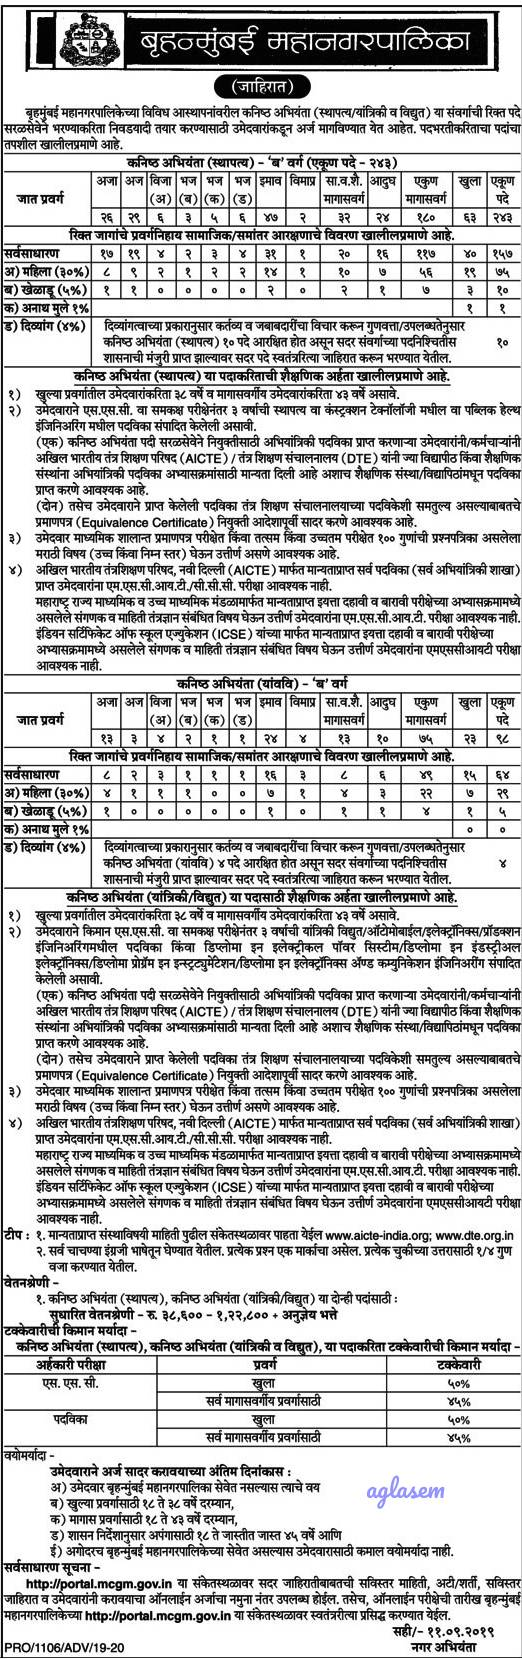 BMC JE Recruitment 2019 Notification Out for 341 Vacancies, Online Form to release at portal.mcgm.gov.in